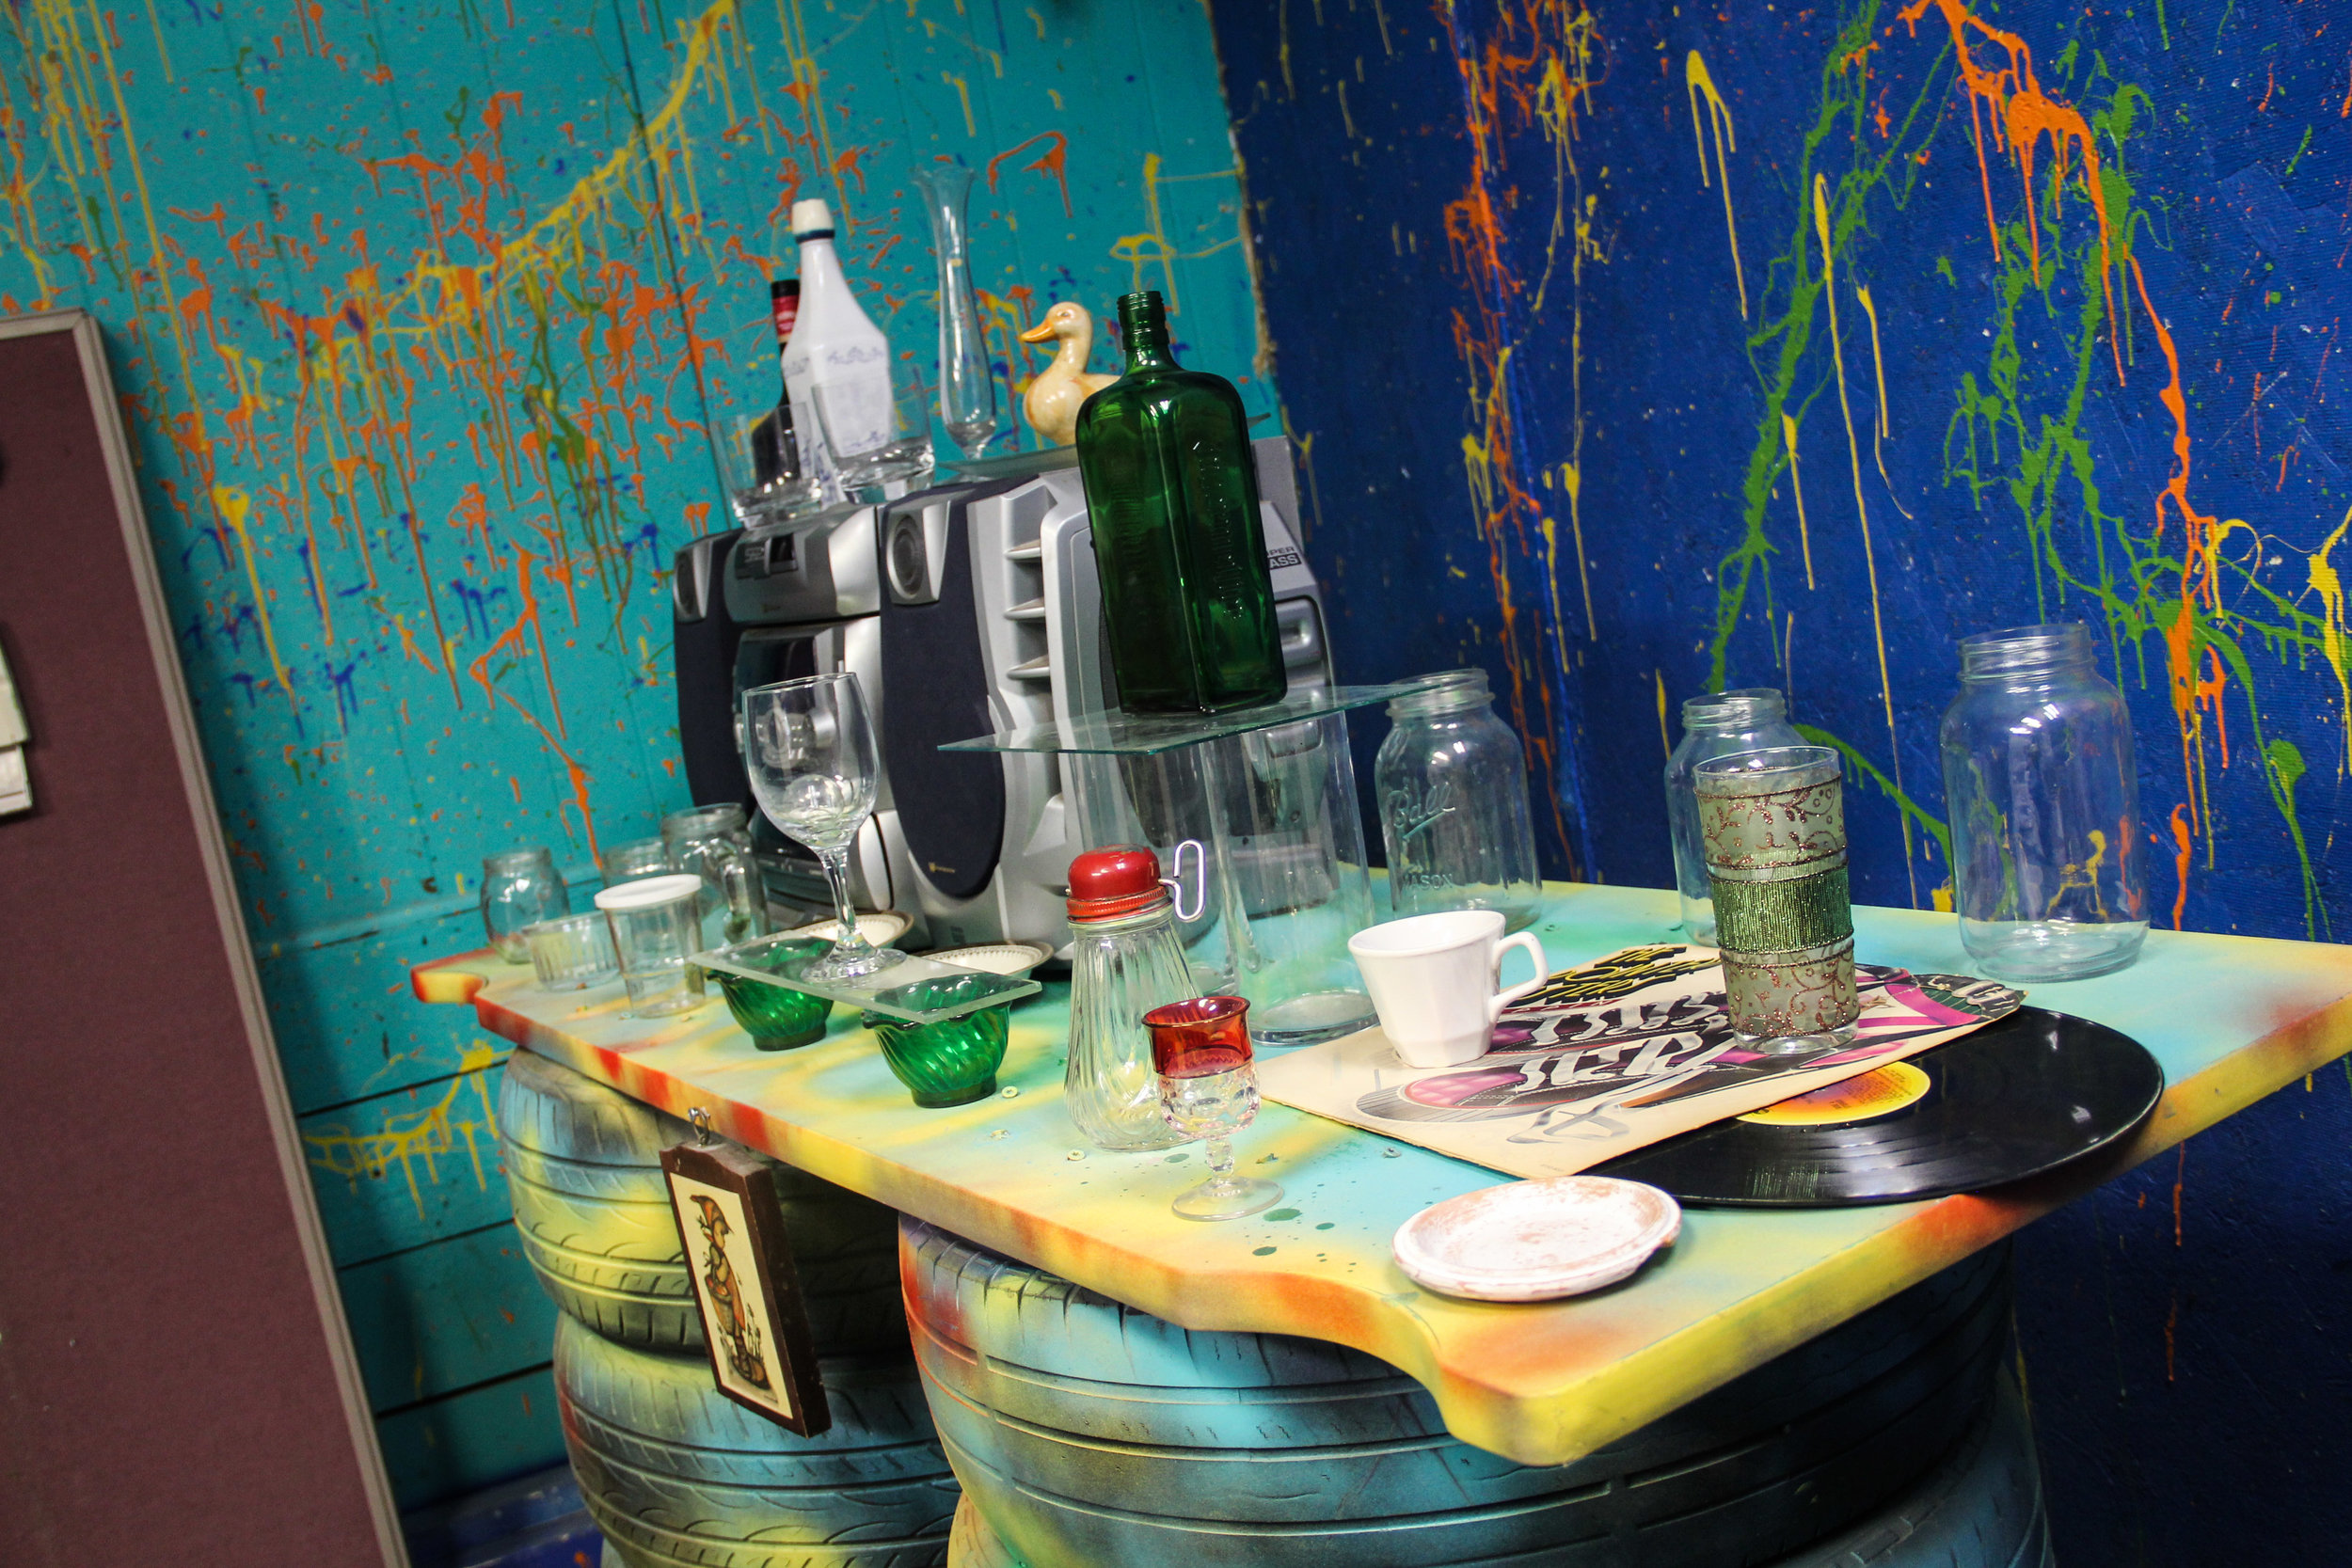 """Breakable items in one of the rooms that are designed for individuals to come in and """"rage"""". Photo by Krista Mathes."""